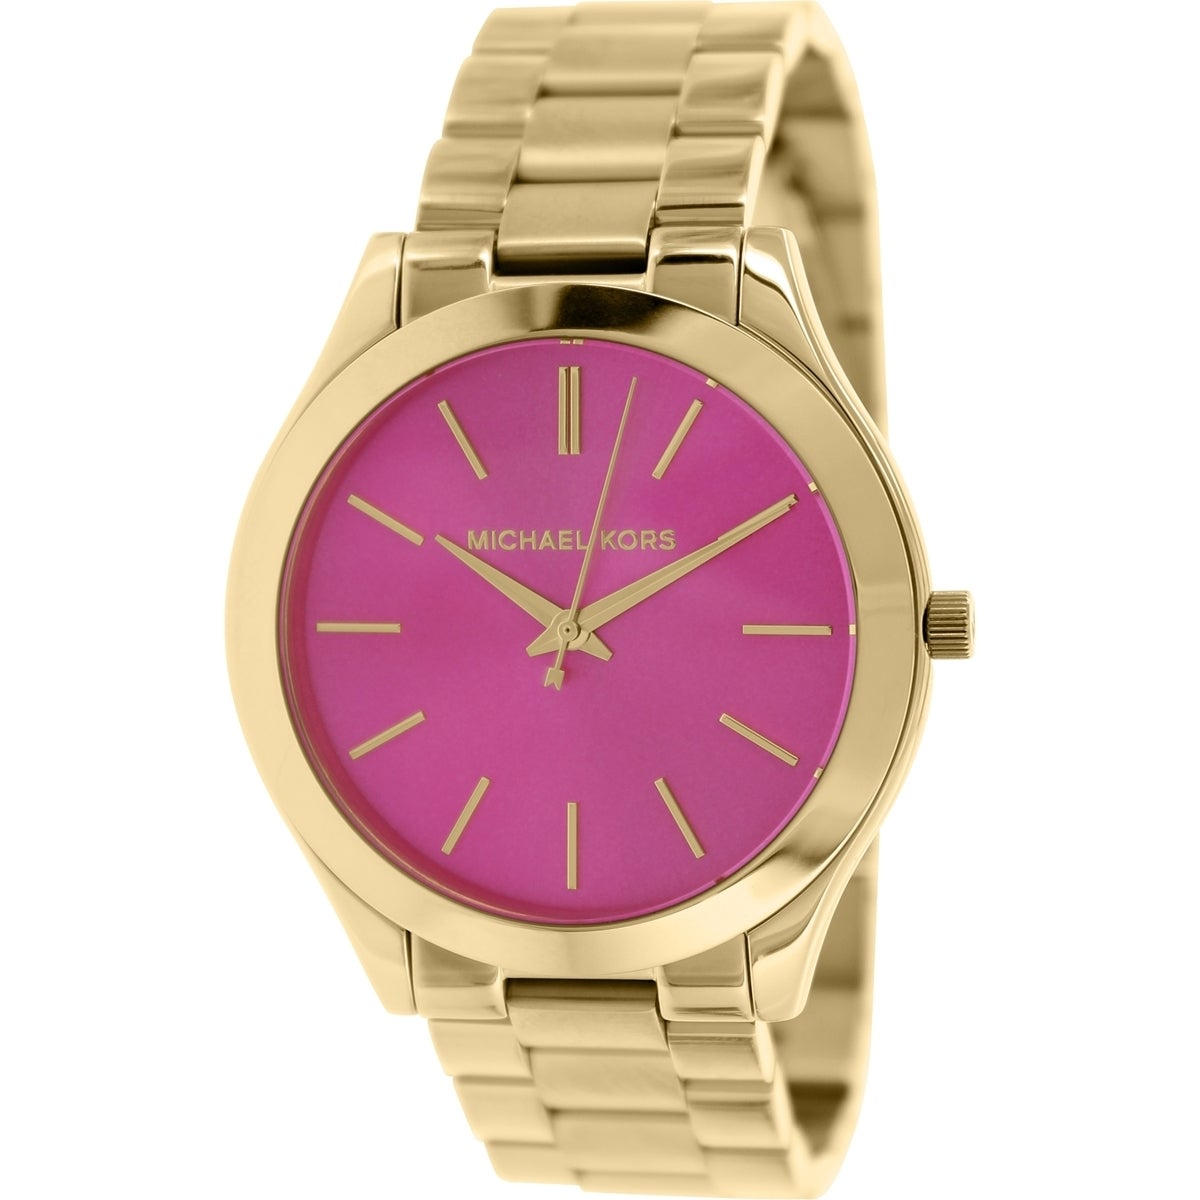 2634207b000 Shop Michael Kors Women's Slim Runway MK3264 Gold Stainless-Steel Quartz  Watch with Pink Dial - Free Shipping Today - Overstock - 9515236